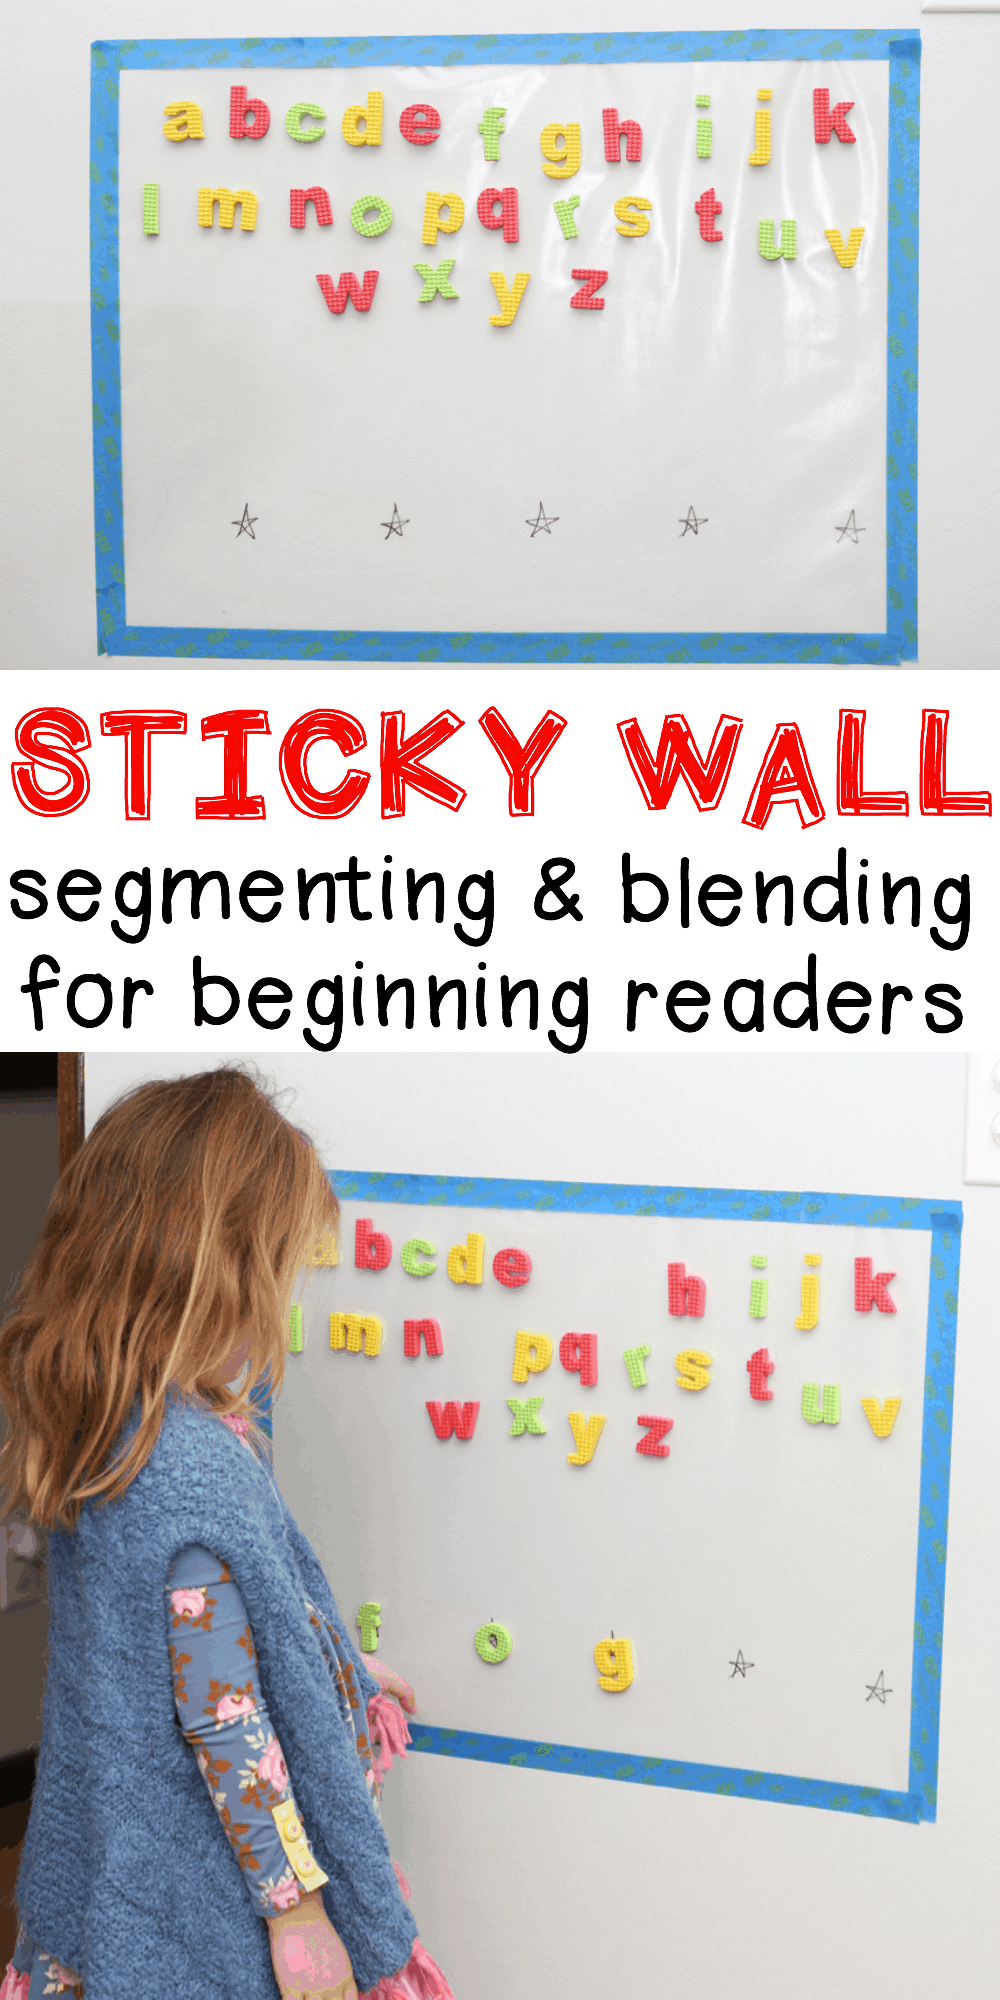 sticky wall segmenting and blending activity for beginning